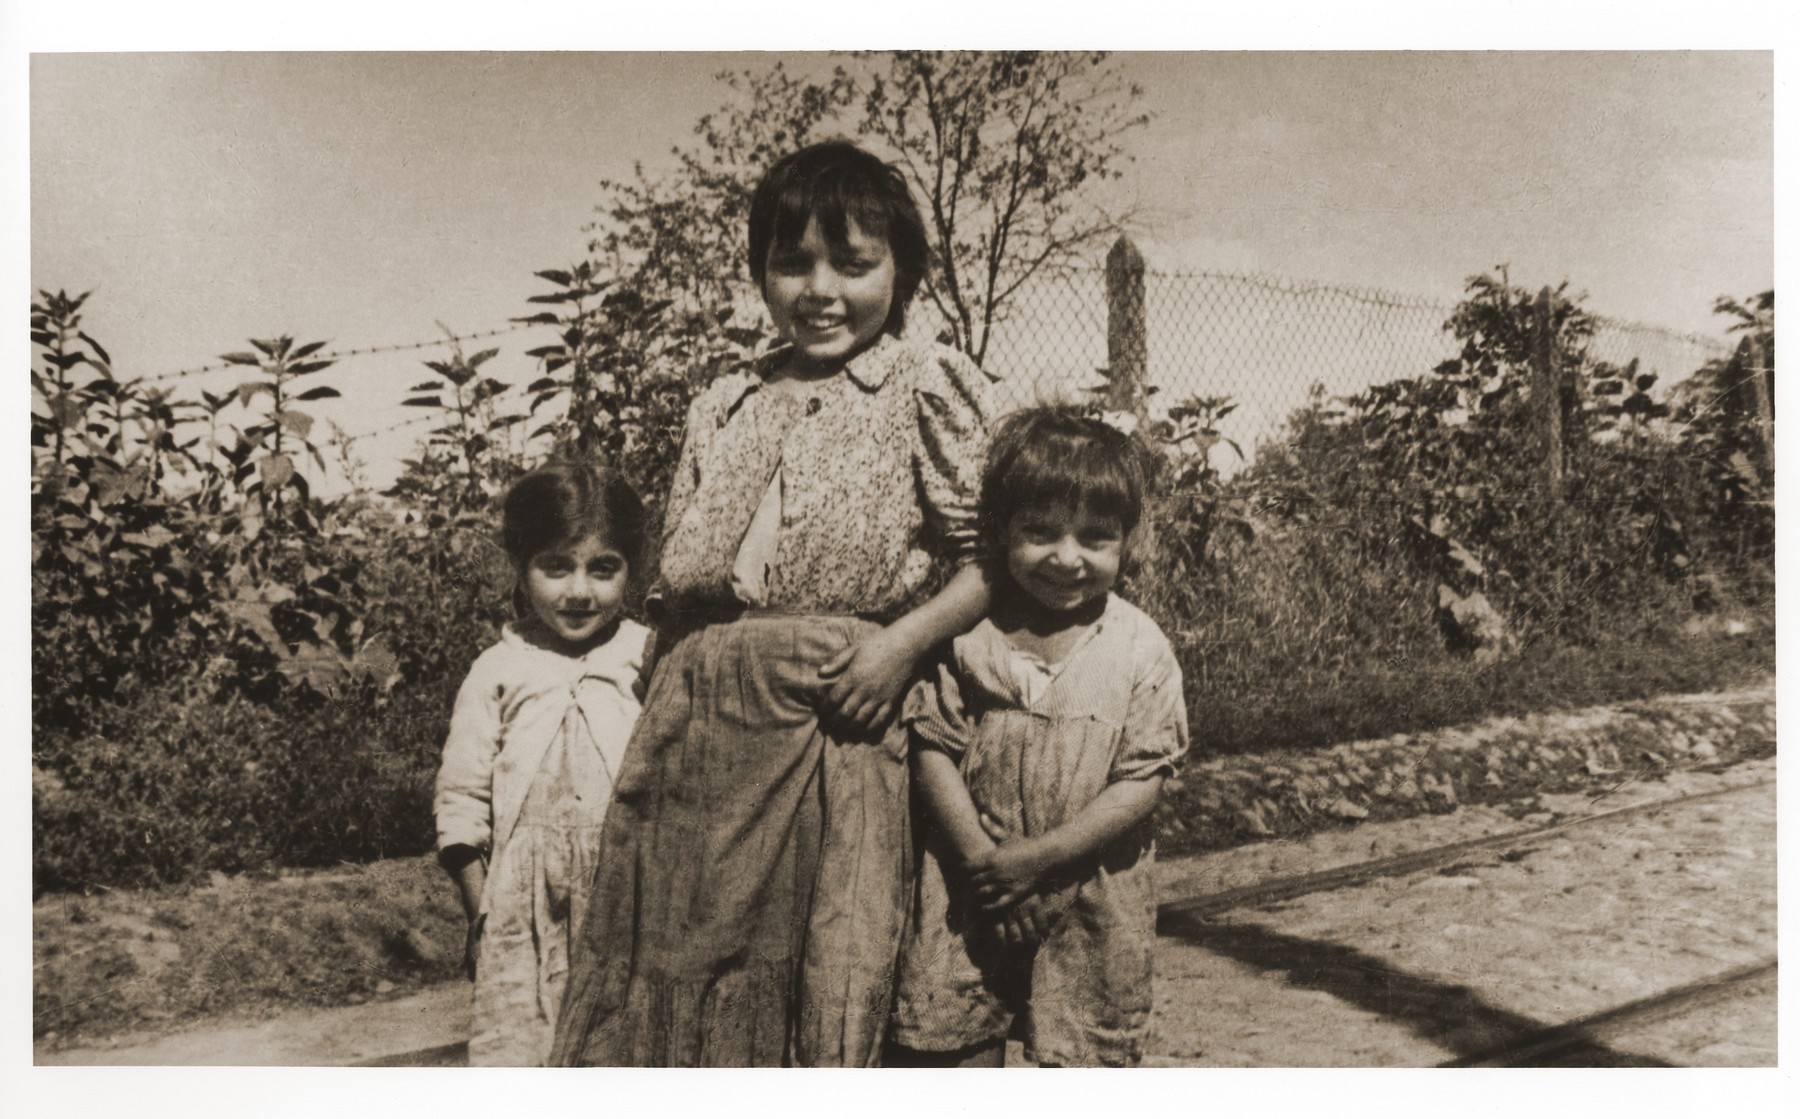 Romani (Gypsy) children in hiding during the German occupation in the Warsaw suburbs.